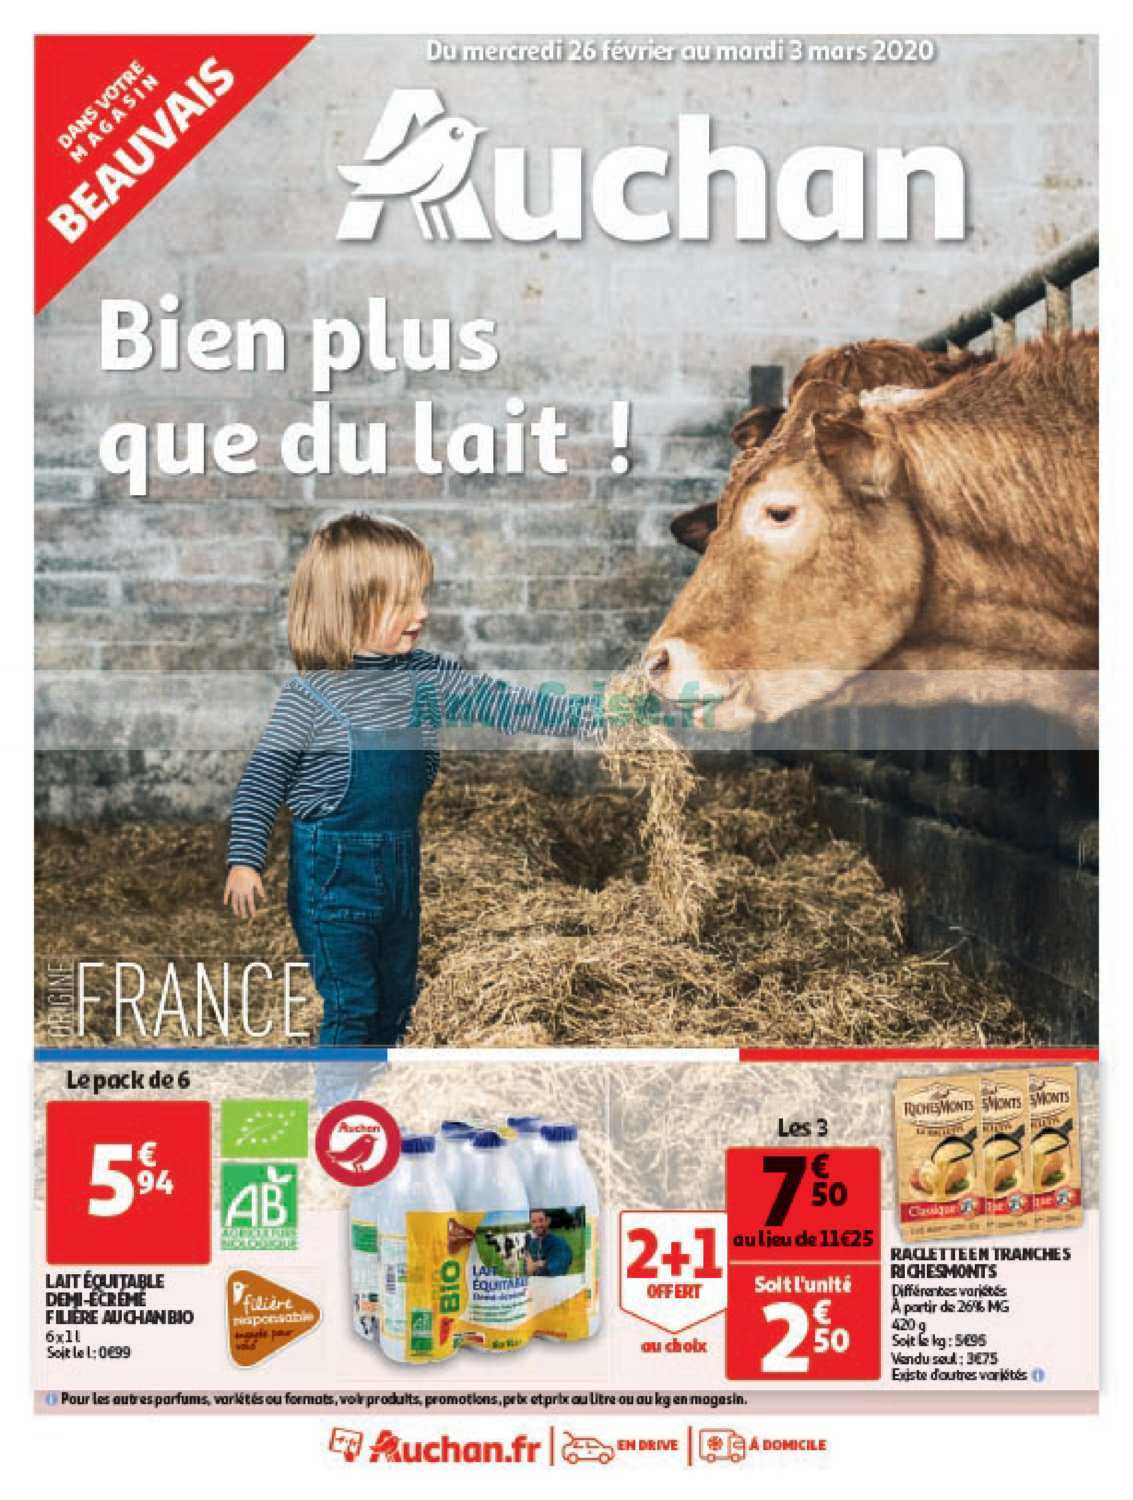 https://media.anti-crise.fr/2020/02/mars2020auchan-local2602202003032020S0C0beauvais-1-227x300.jpg